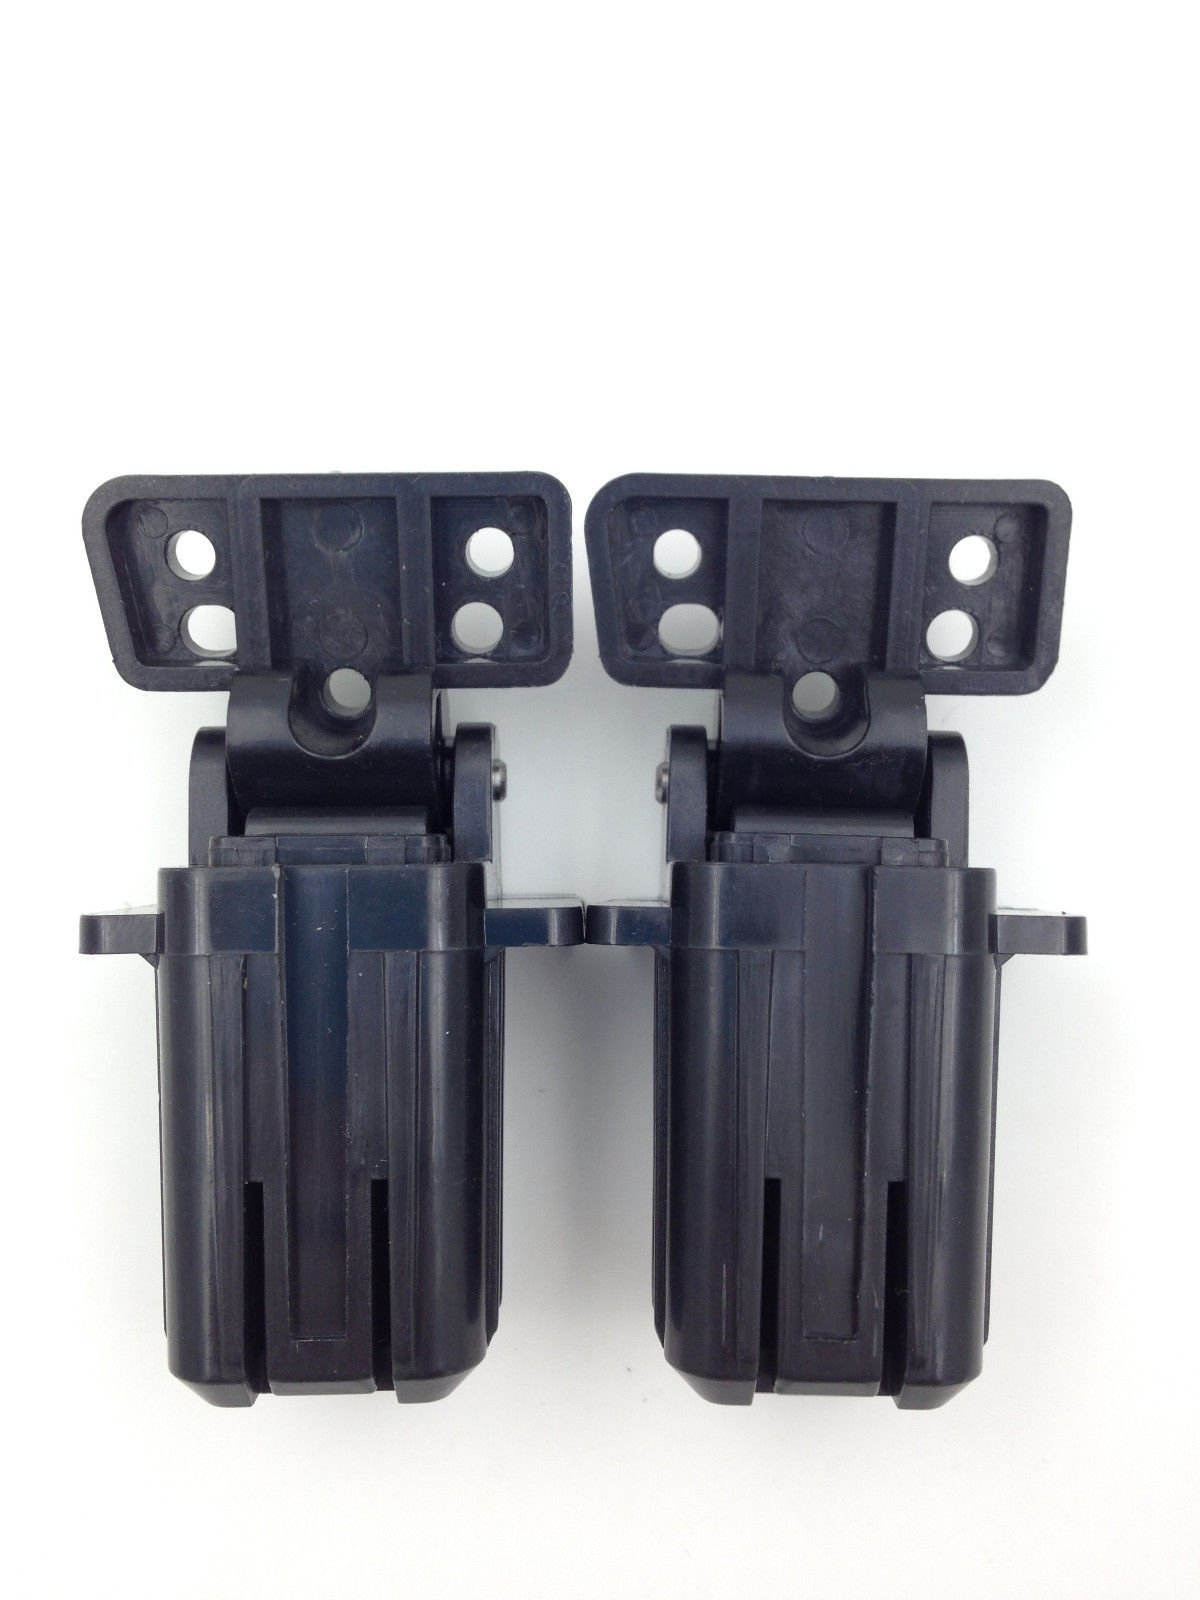 (2Pack) CF288-60027 For HP LaserJet PRO400 M425DN MFP M425DW MFP ADF Hinge assy by kuang (Image #2)